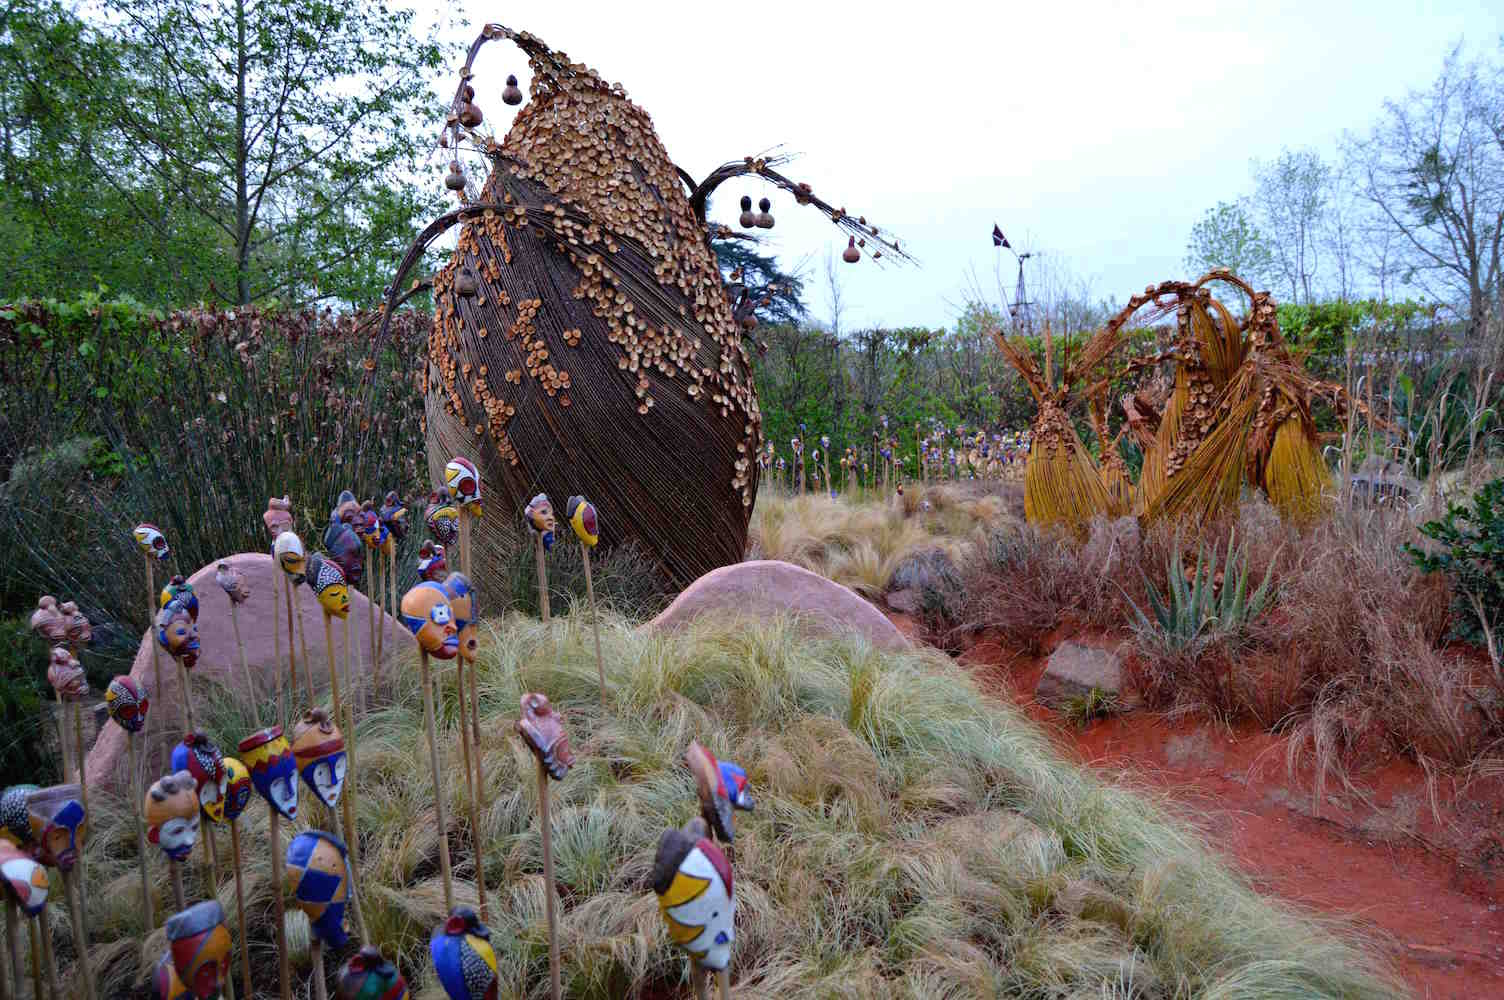 Baobab sculpture and Passport masks in 'African Kitchen' garden, design Leon Kluge